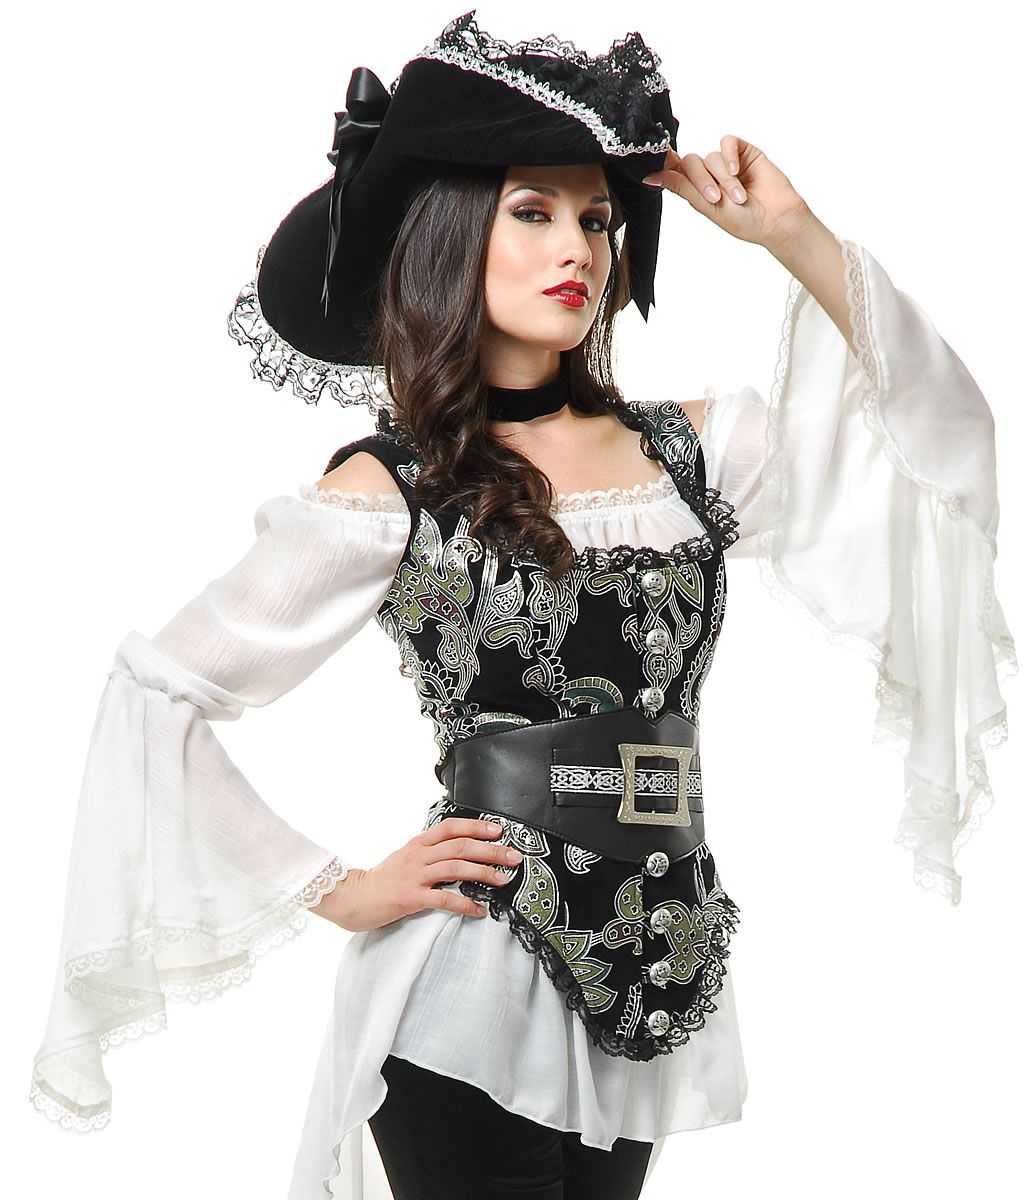 98c7508344d Womens Pirate Costume Pirate Lady Vest - I really like the white shirt